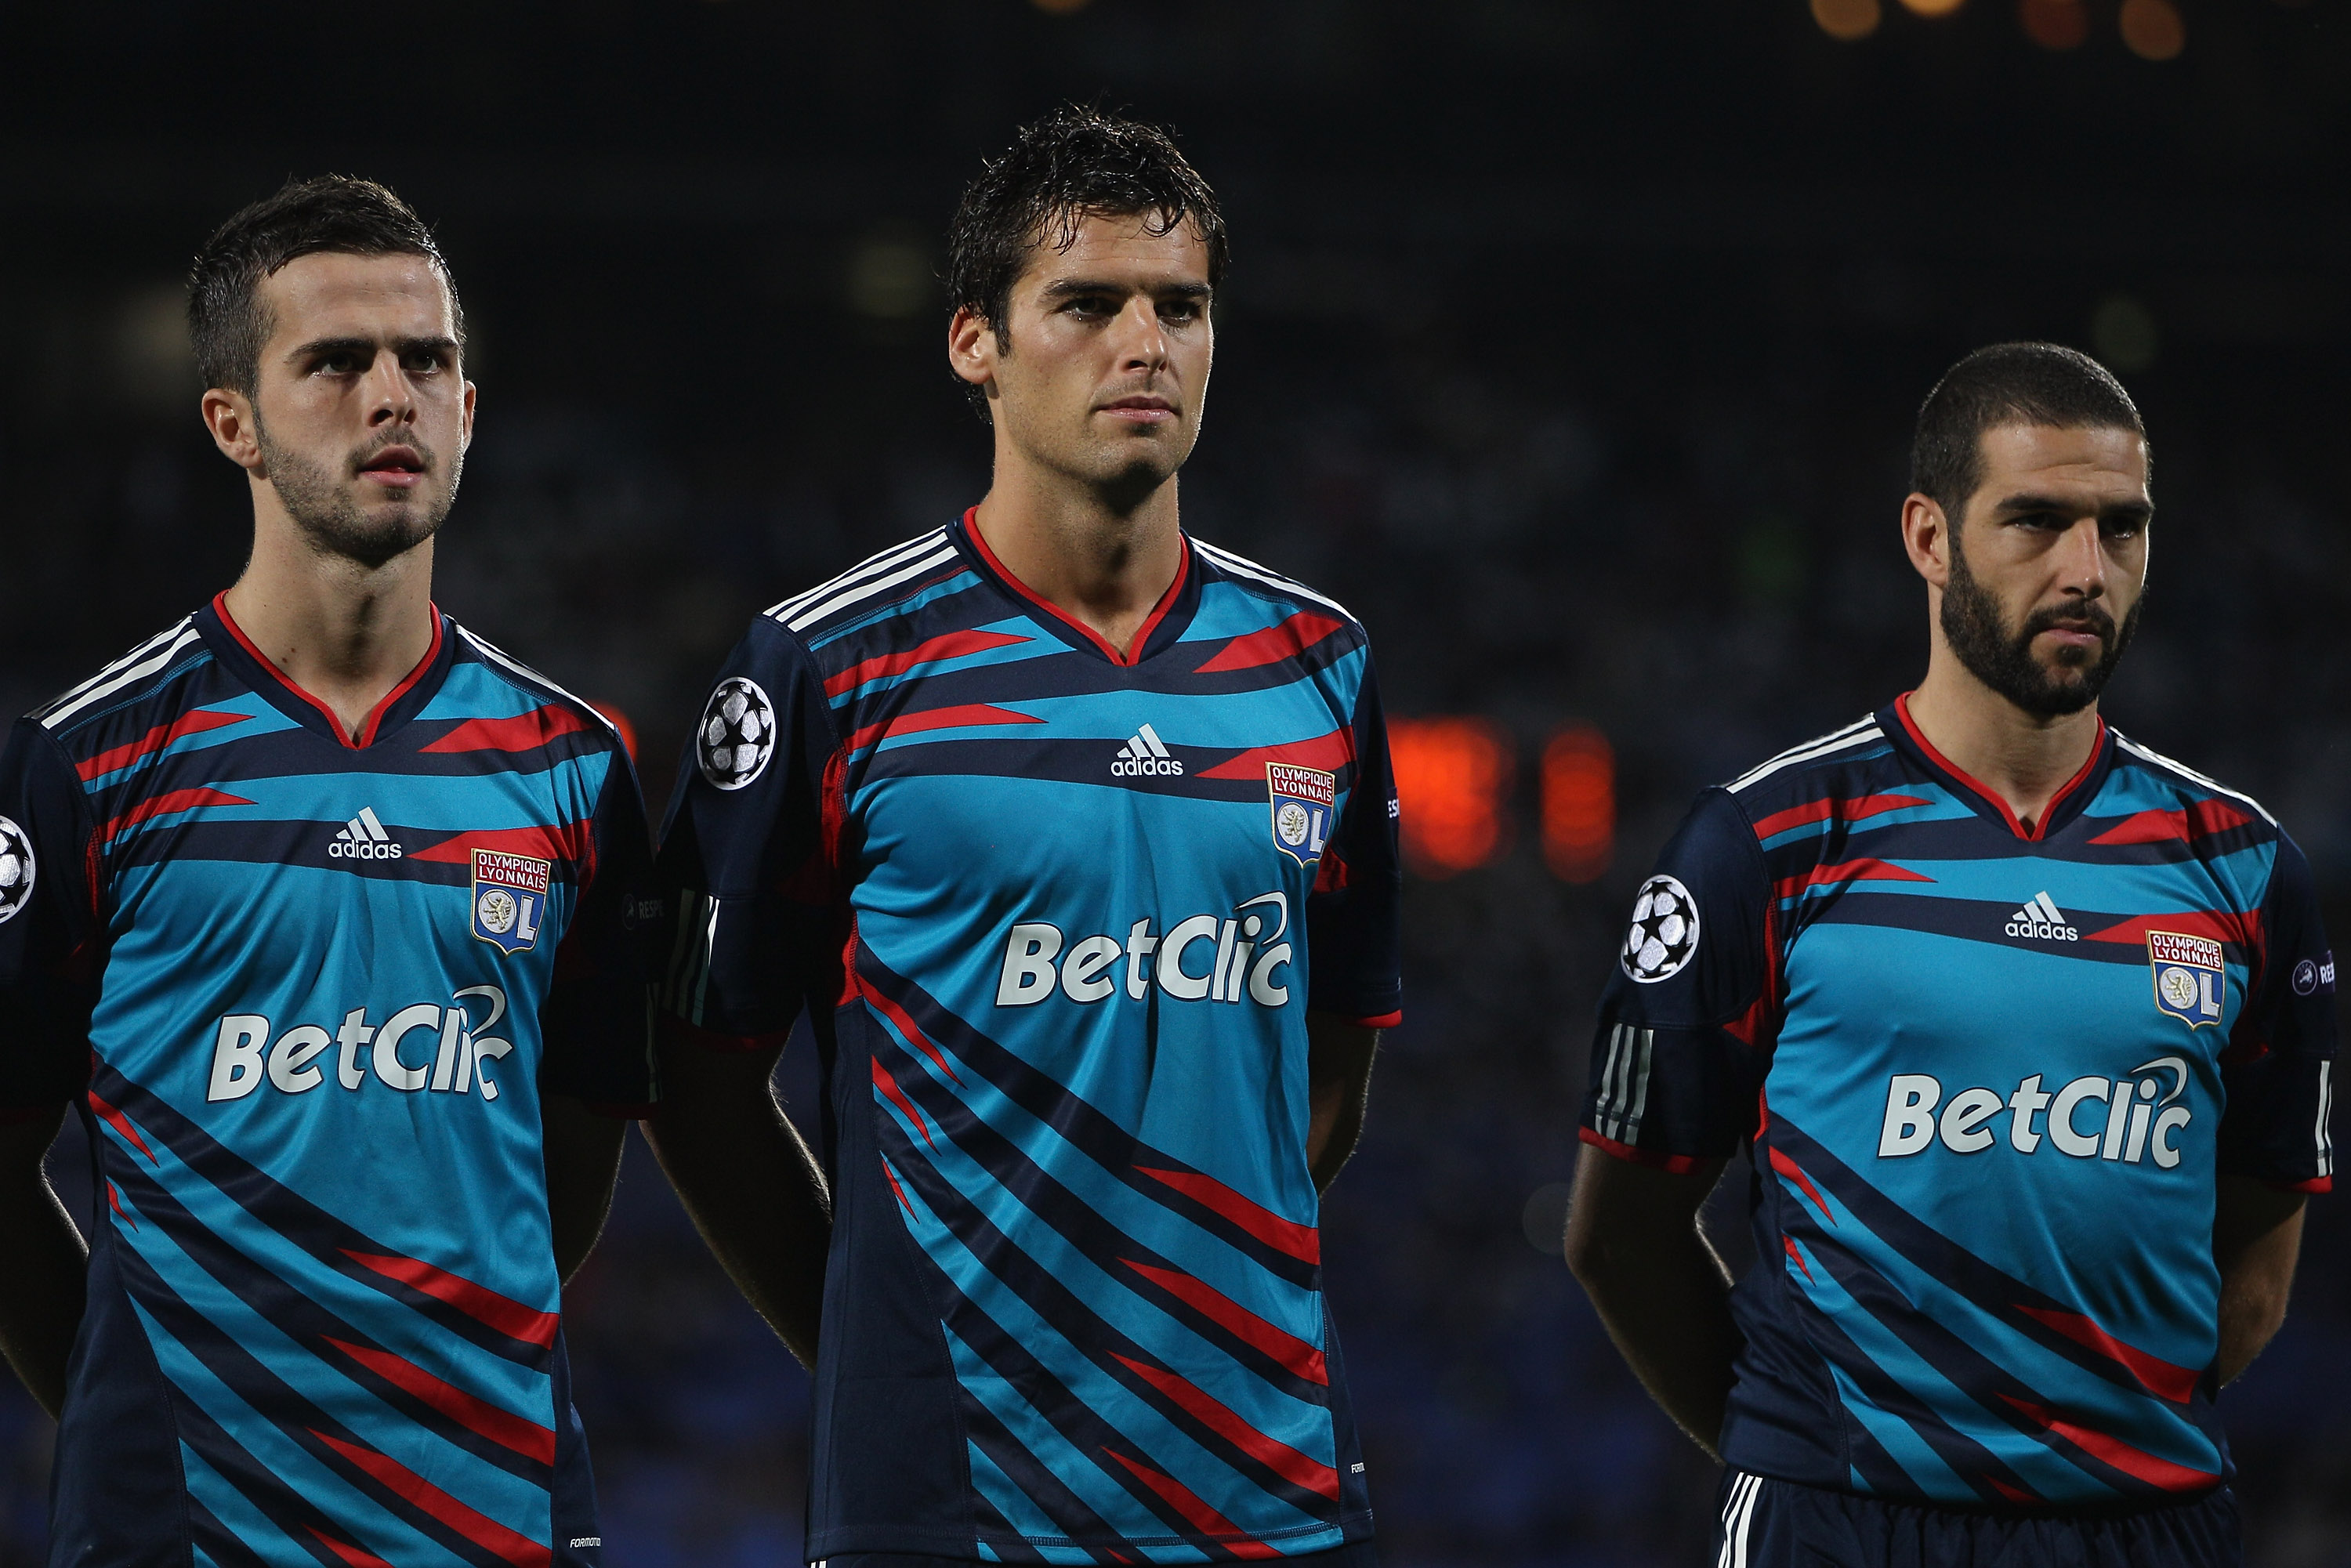 LYON, FRANCE - SEPTEMBER 14:  Miralem Pjanic (l),Yoann Gourcuff (c) and Lisandro (r) of Lyon line up before the UEFA Champions League Group B match between Olympique Lyonnais and FC Schalke 04 at the Stade de Gerland on September 14, 2010 in Lyon, France.